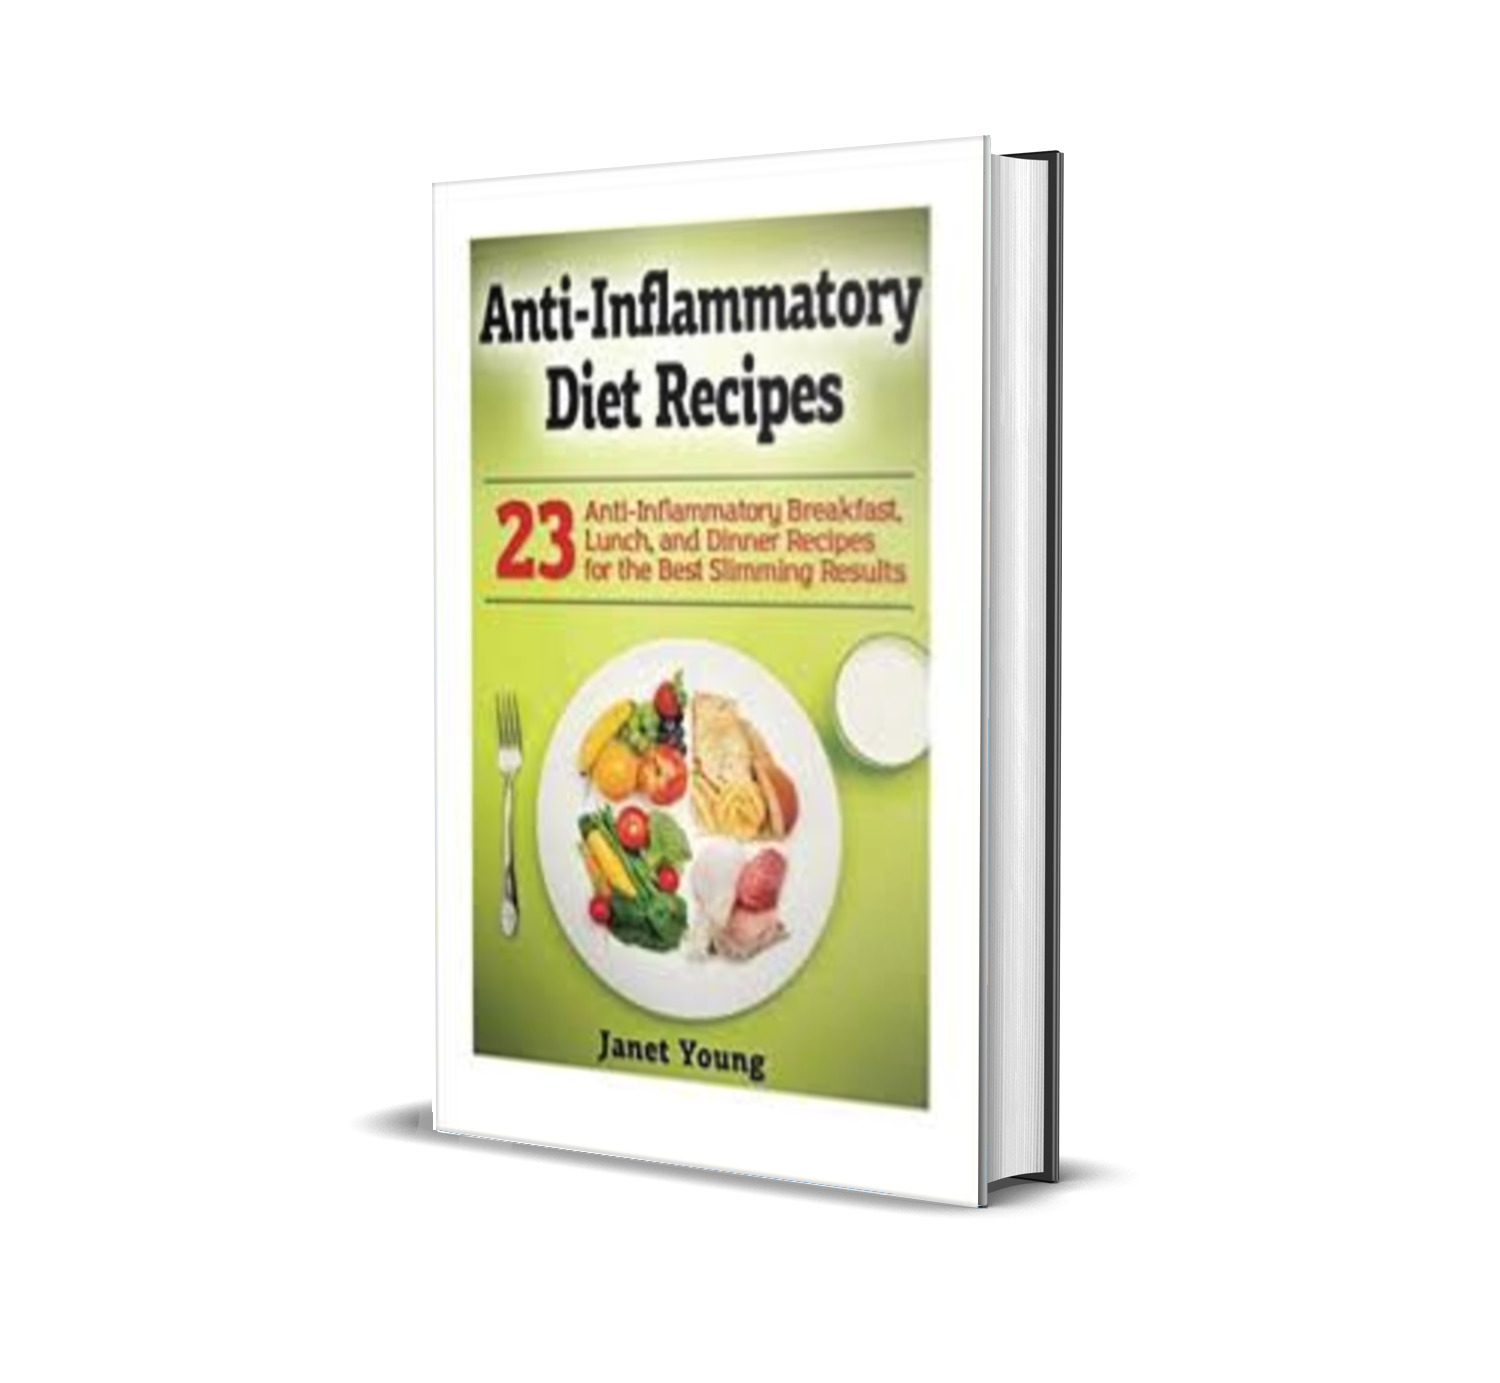 anti inflammatory diet and recipes-1-Janet young